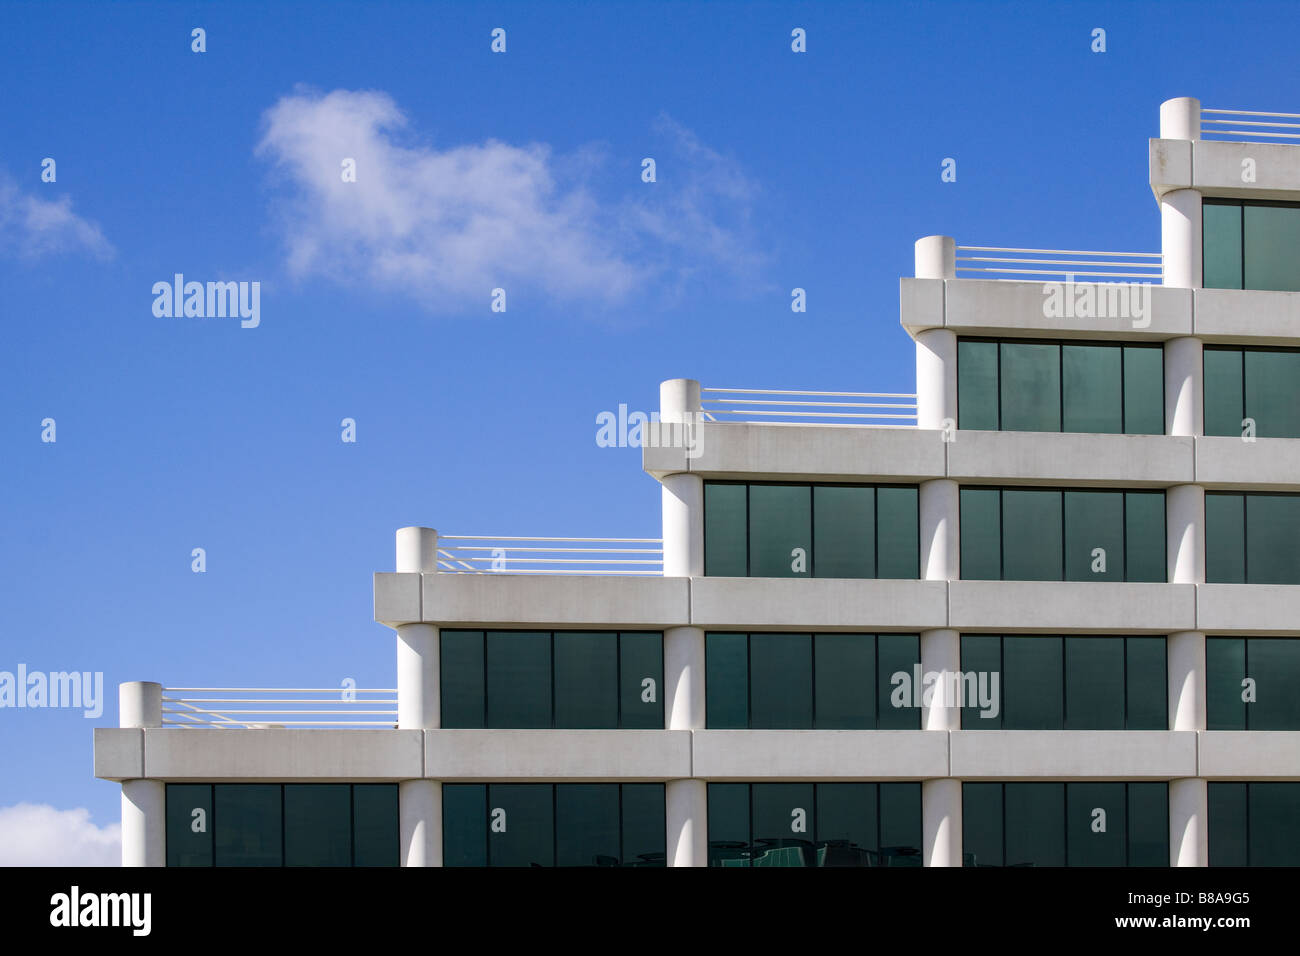 Architectural detail of modern office building with rooftop terraces in a stairstep pattern Silicon Valley California Stock Photo